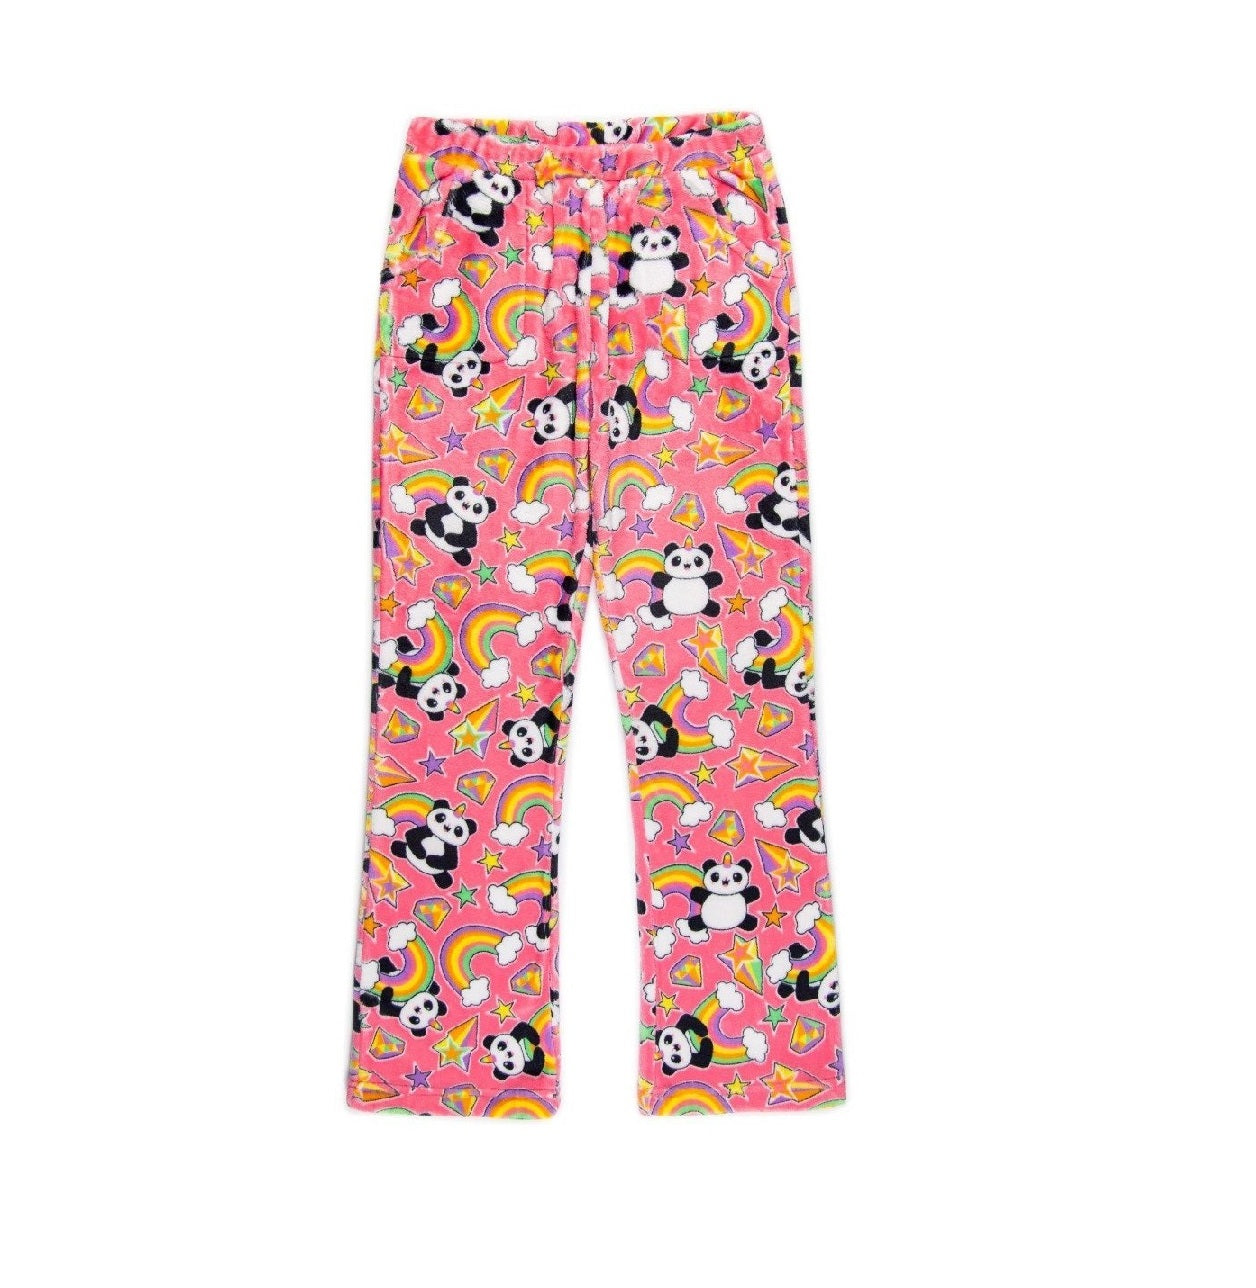 Panda Fleece Pants